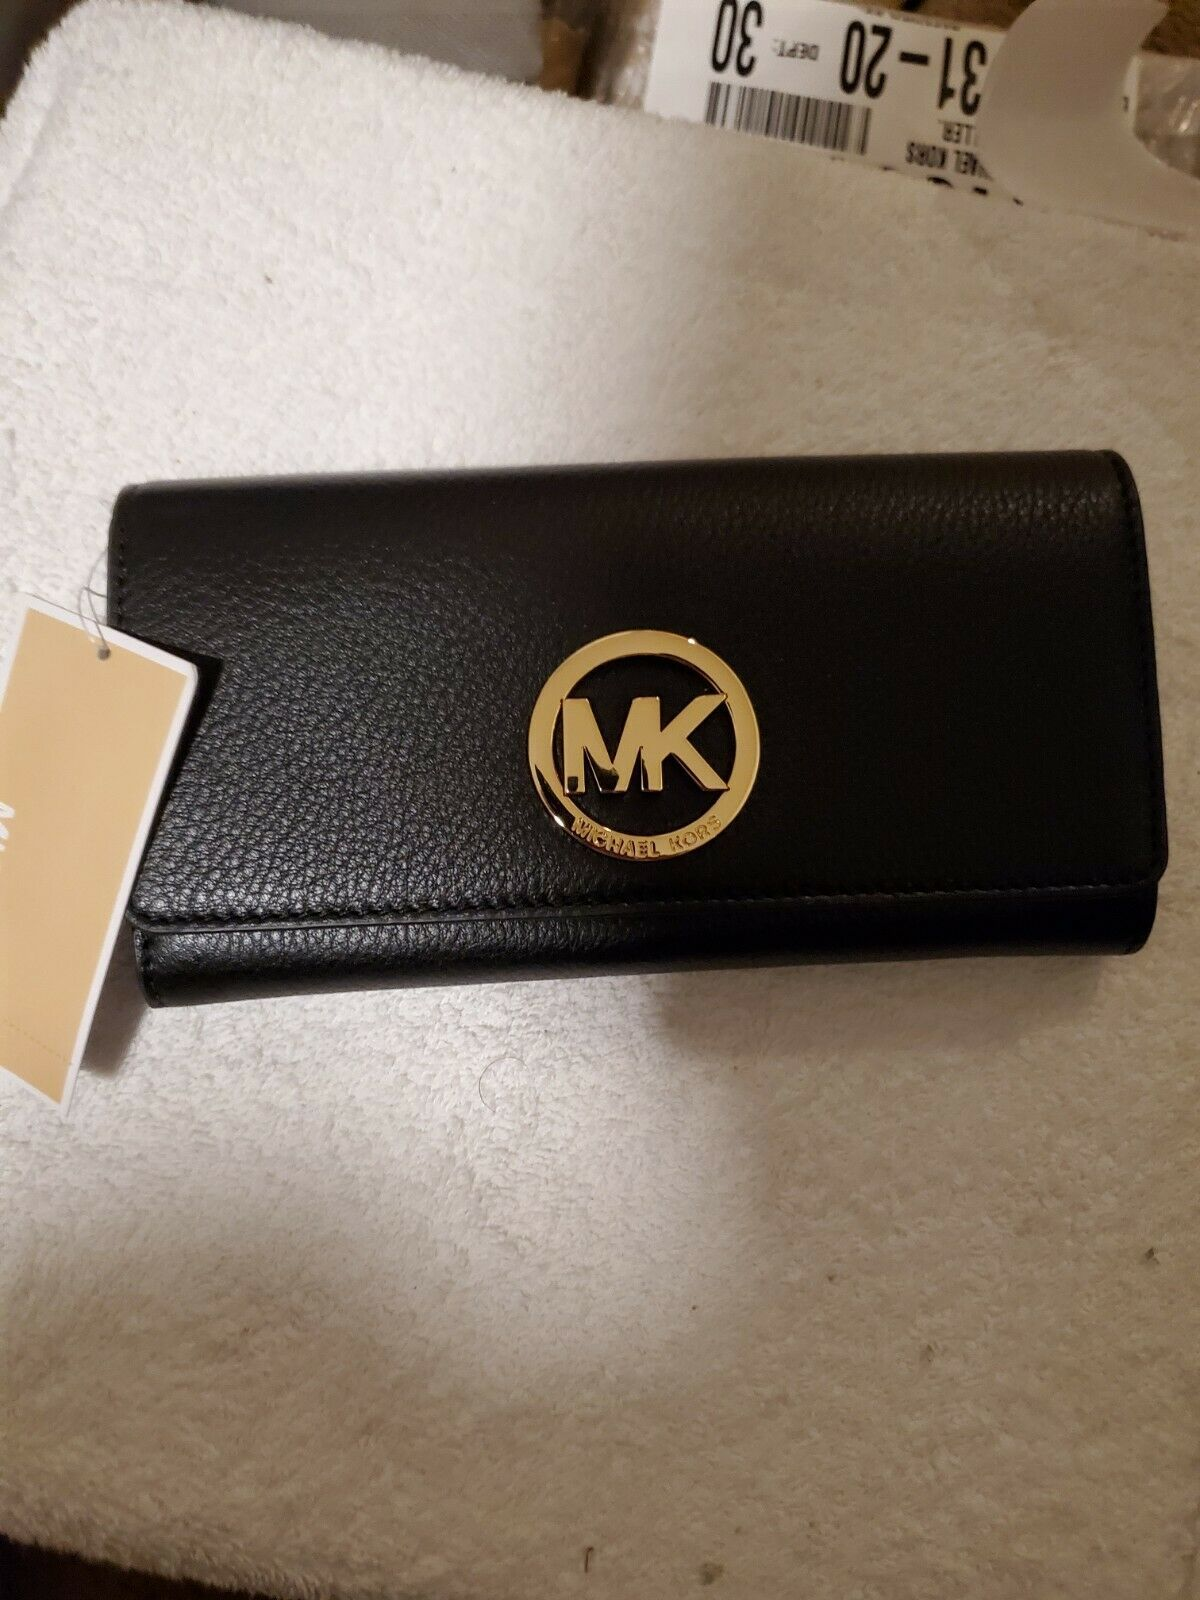 Primary image for Michael Kors Fulton Carryall Wallet $148.00 Black